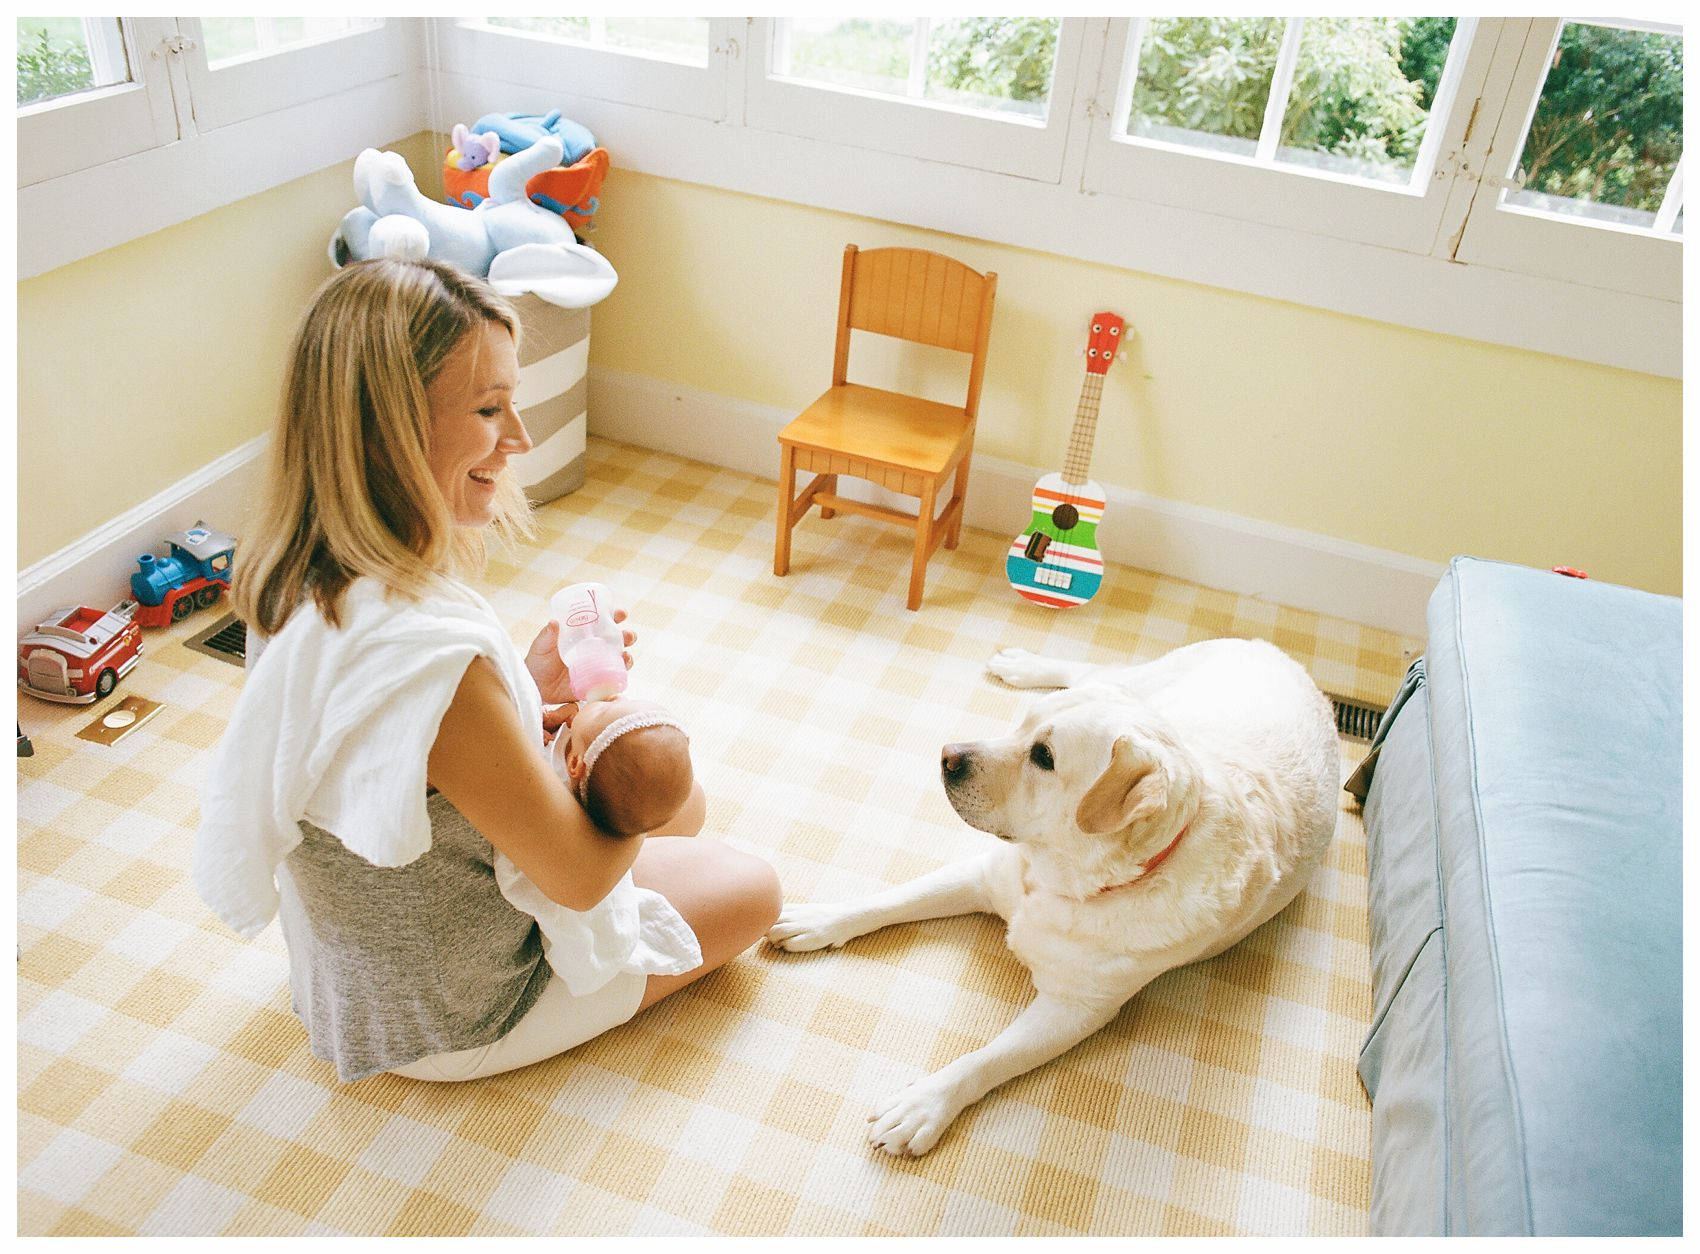 happy mom feeding the baby on the yellow carpet in the sun room with the family dog looking at her in Summit NJ